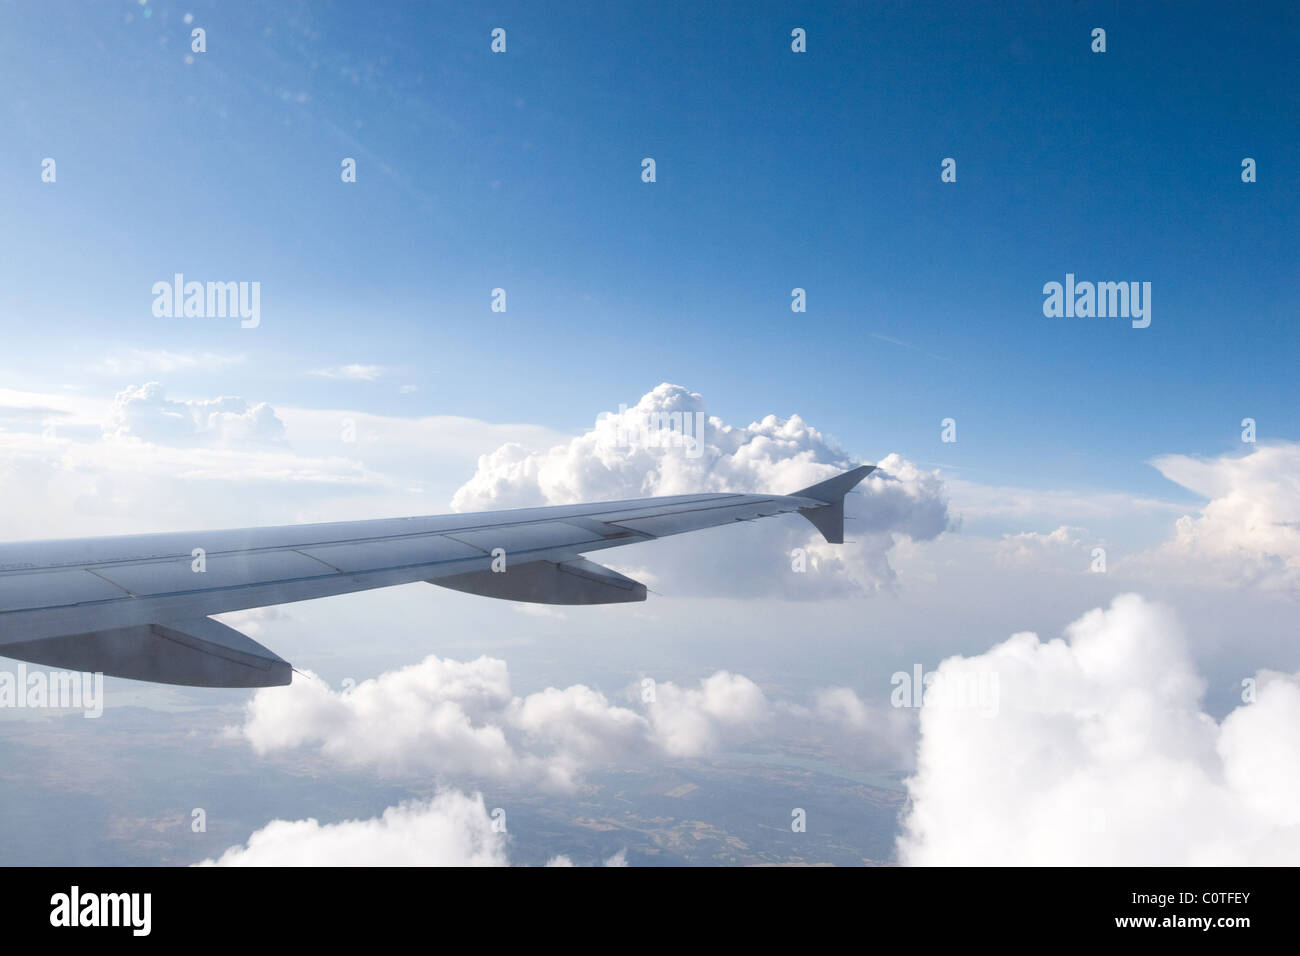 airplane wing aircraft aluminum flying sky in flight on clouds - Stock Image